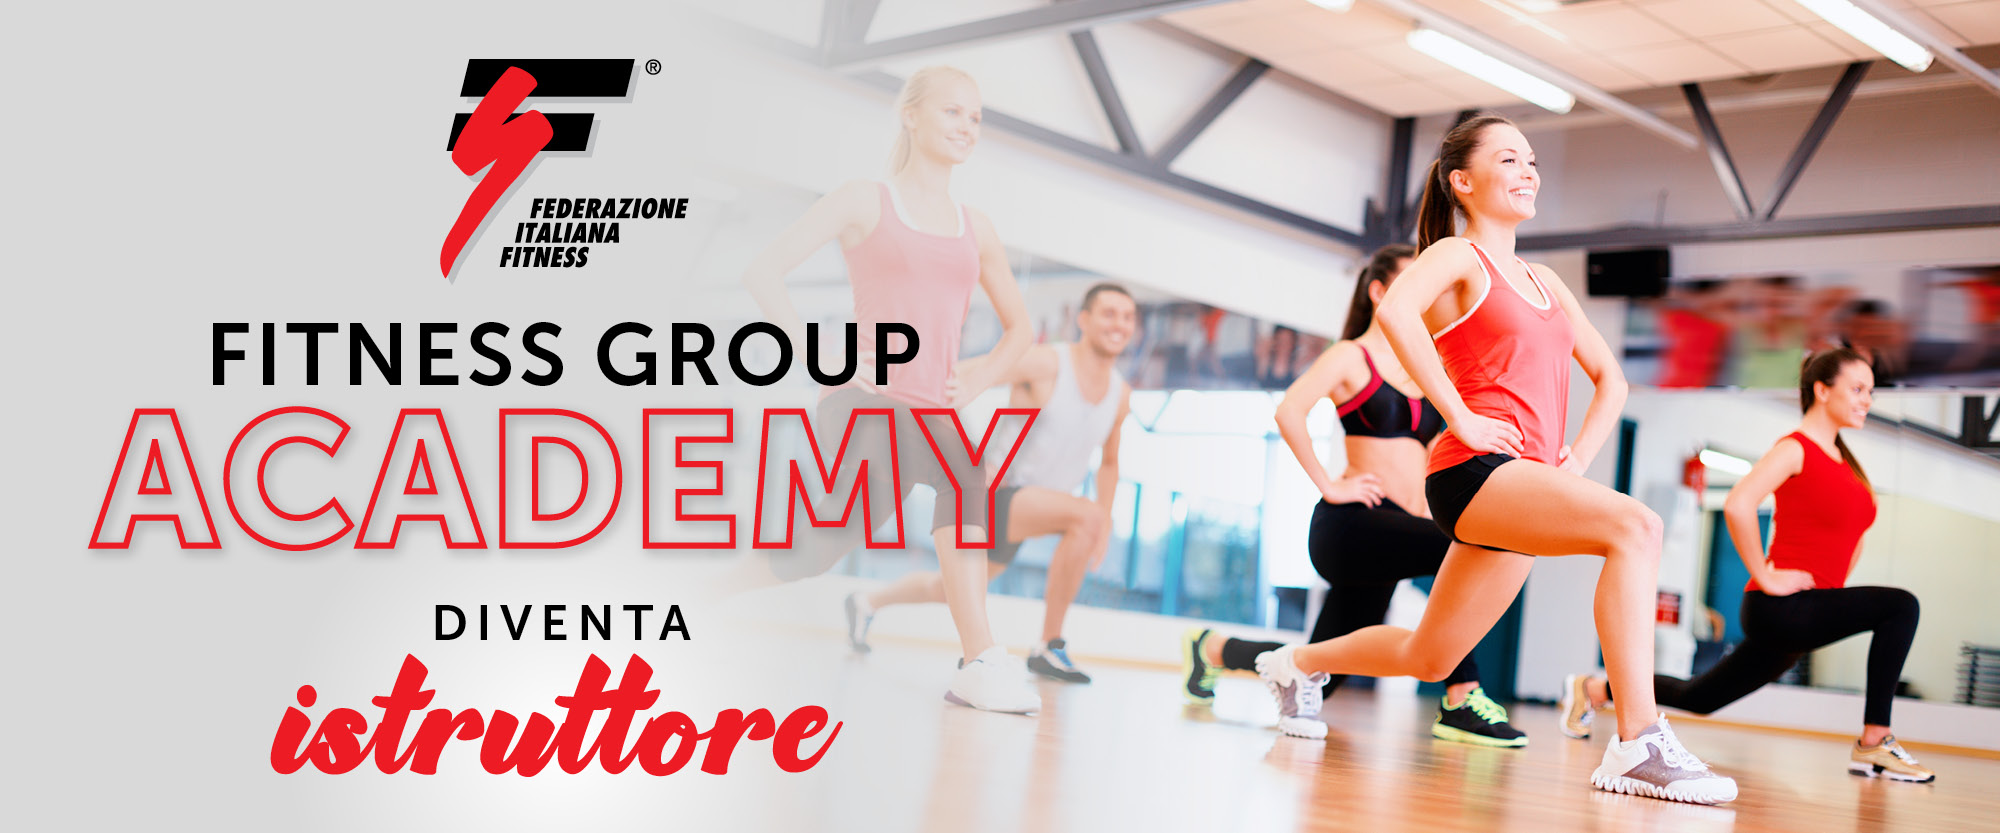 fitness group academy960x400